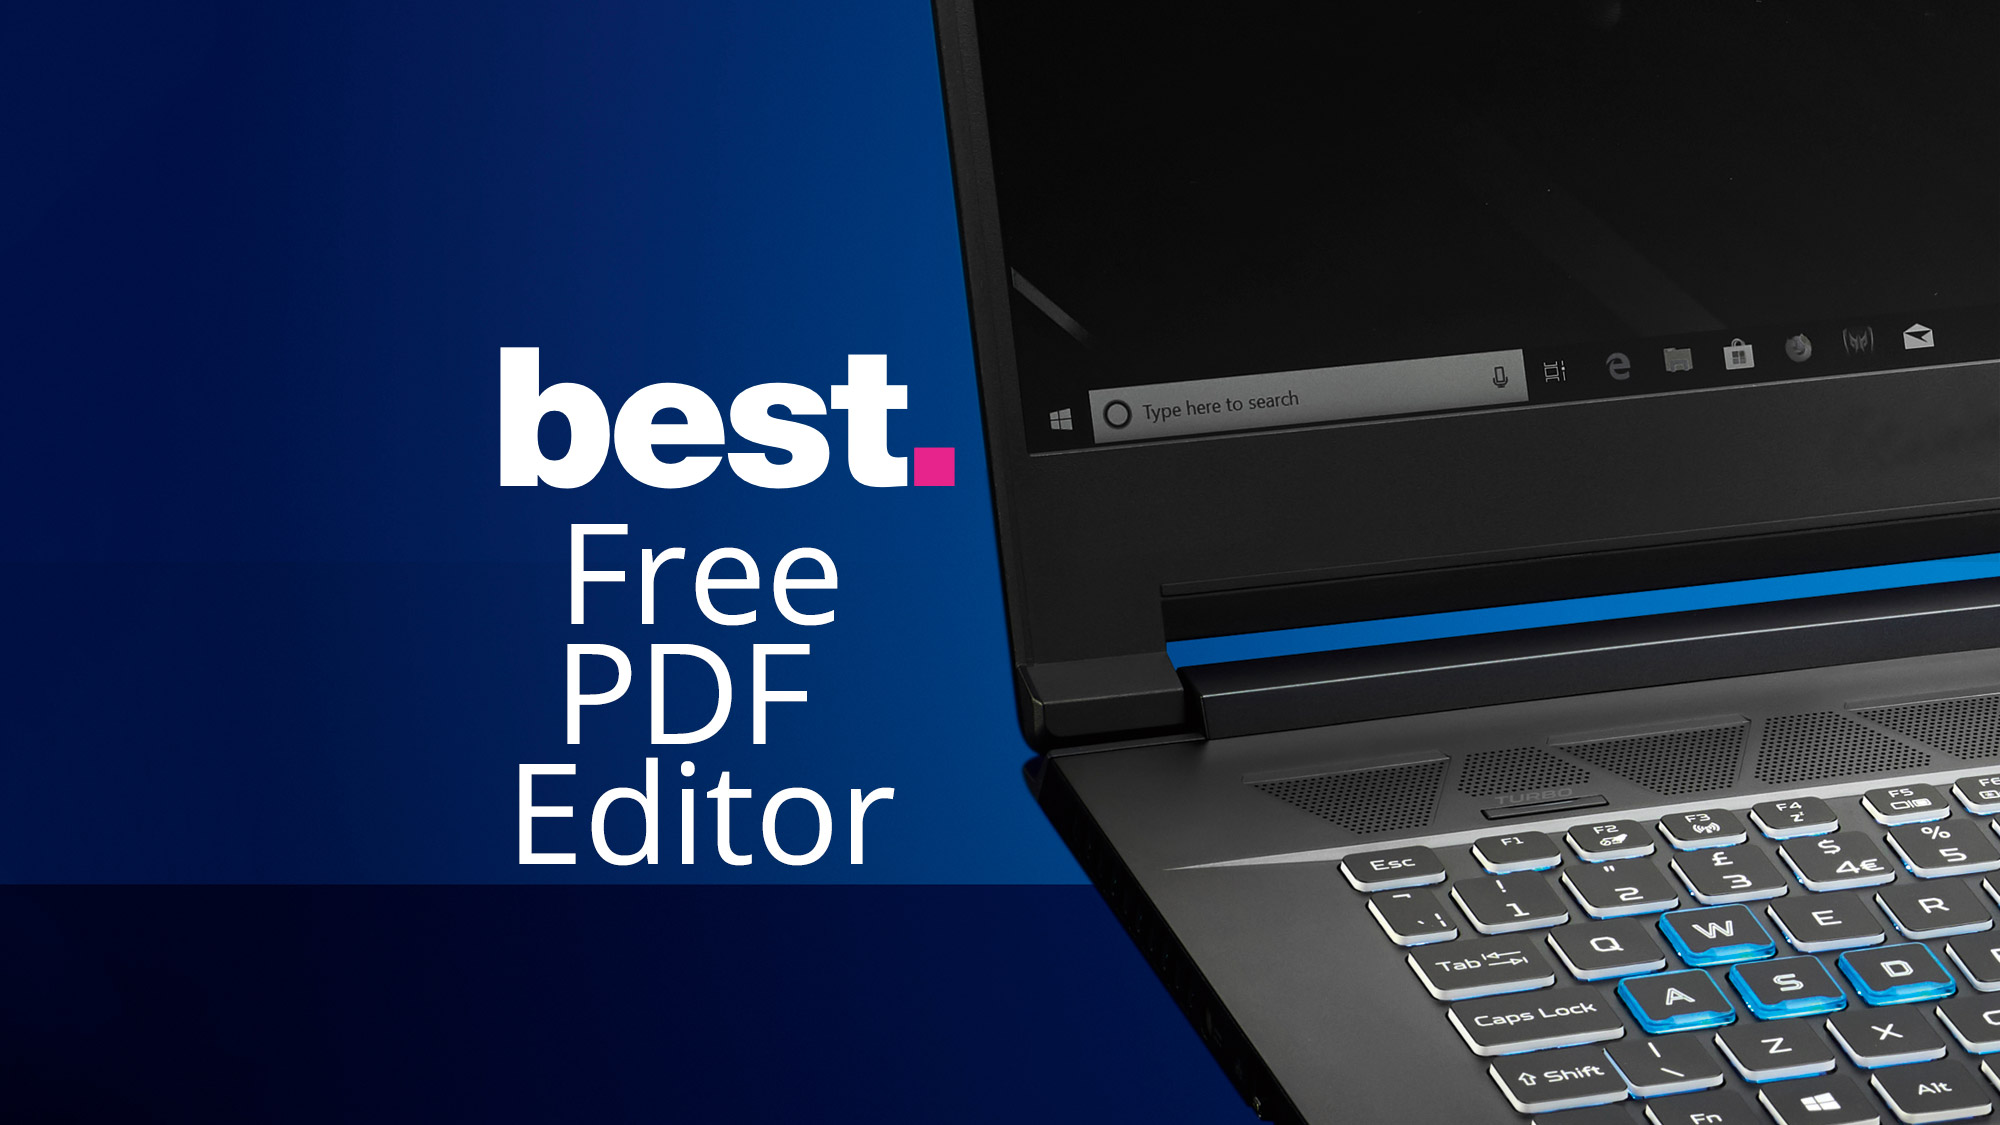 free pdf editor software for windows 7